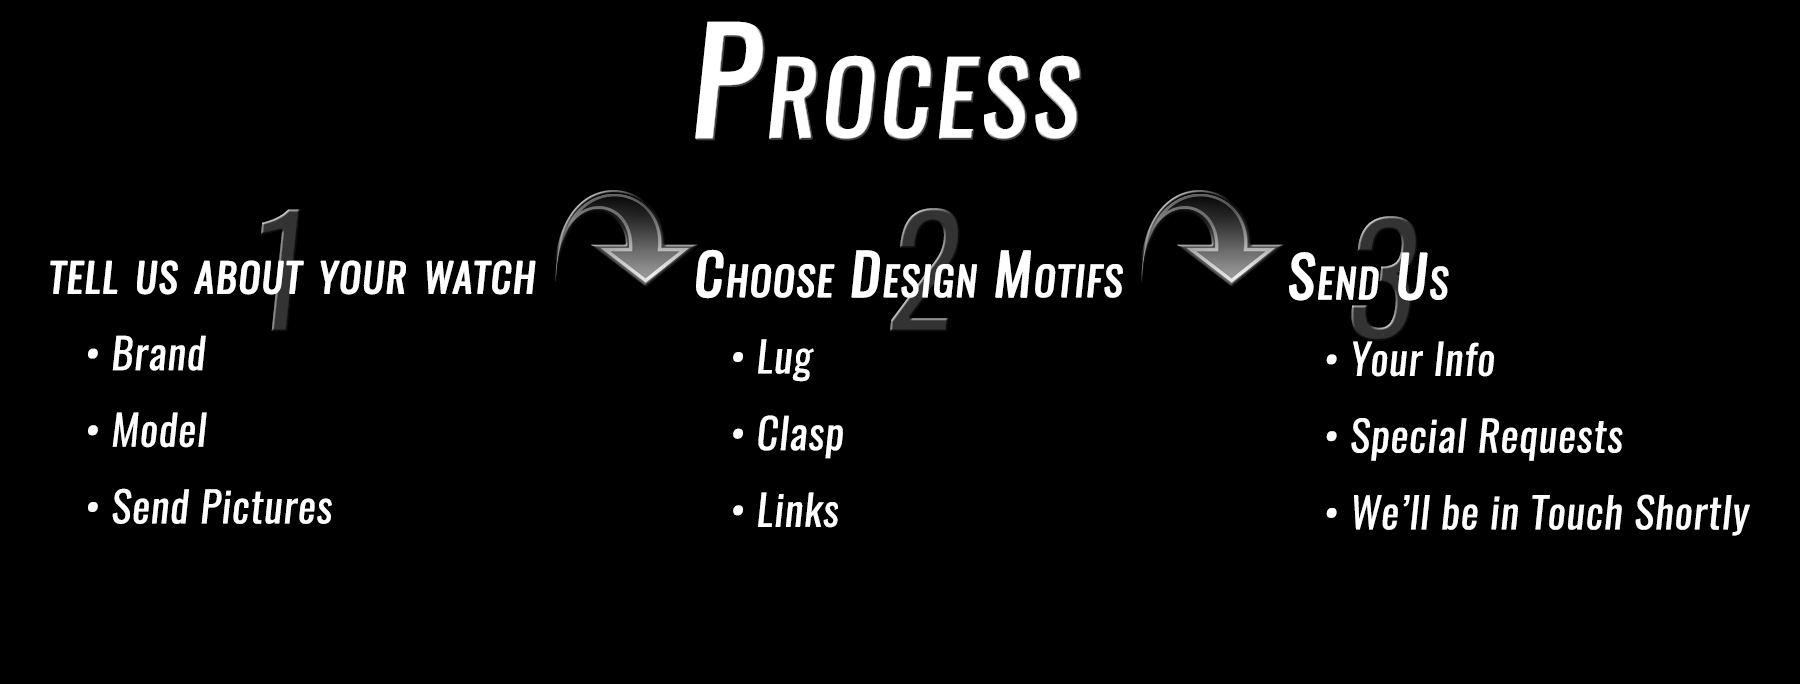 custom-orders-3-steps-arrow-banner.jpg